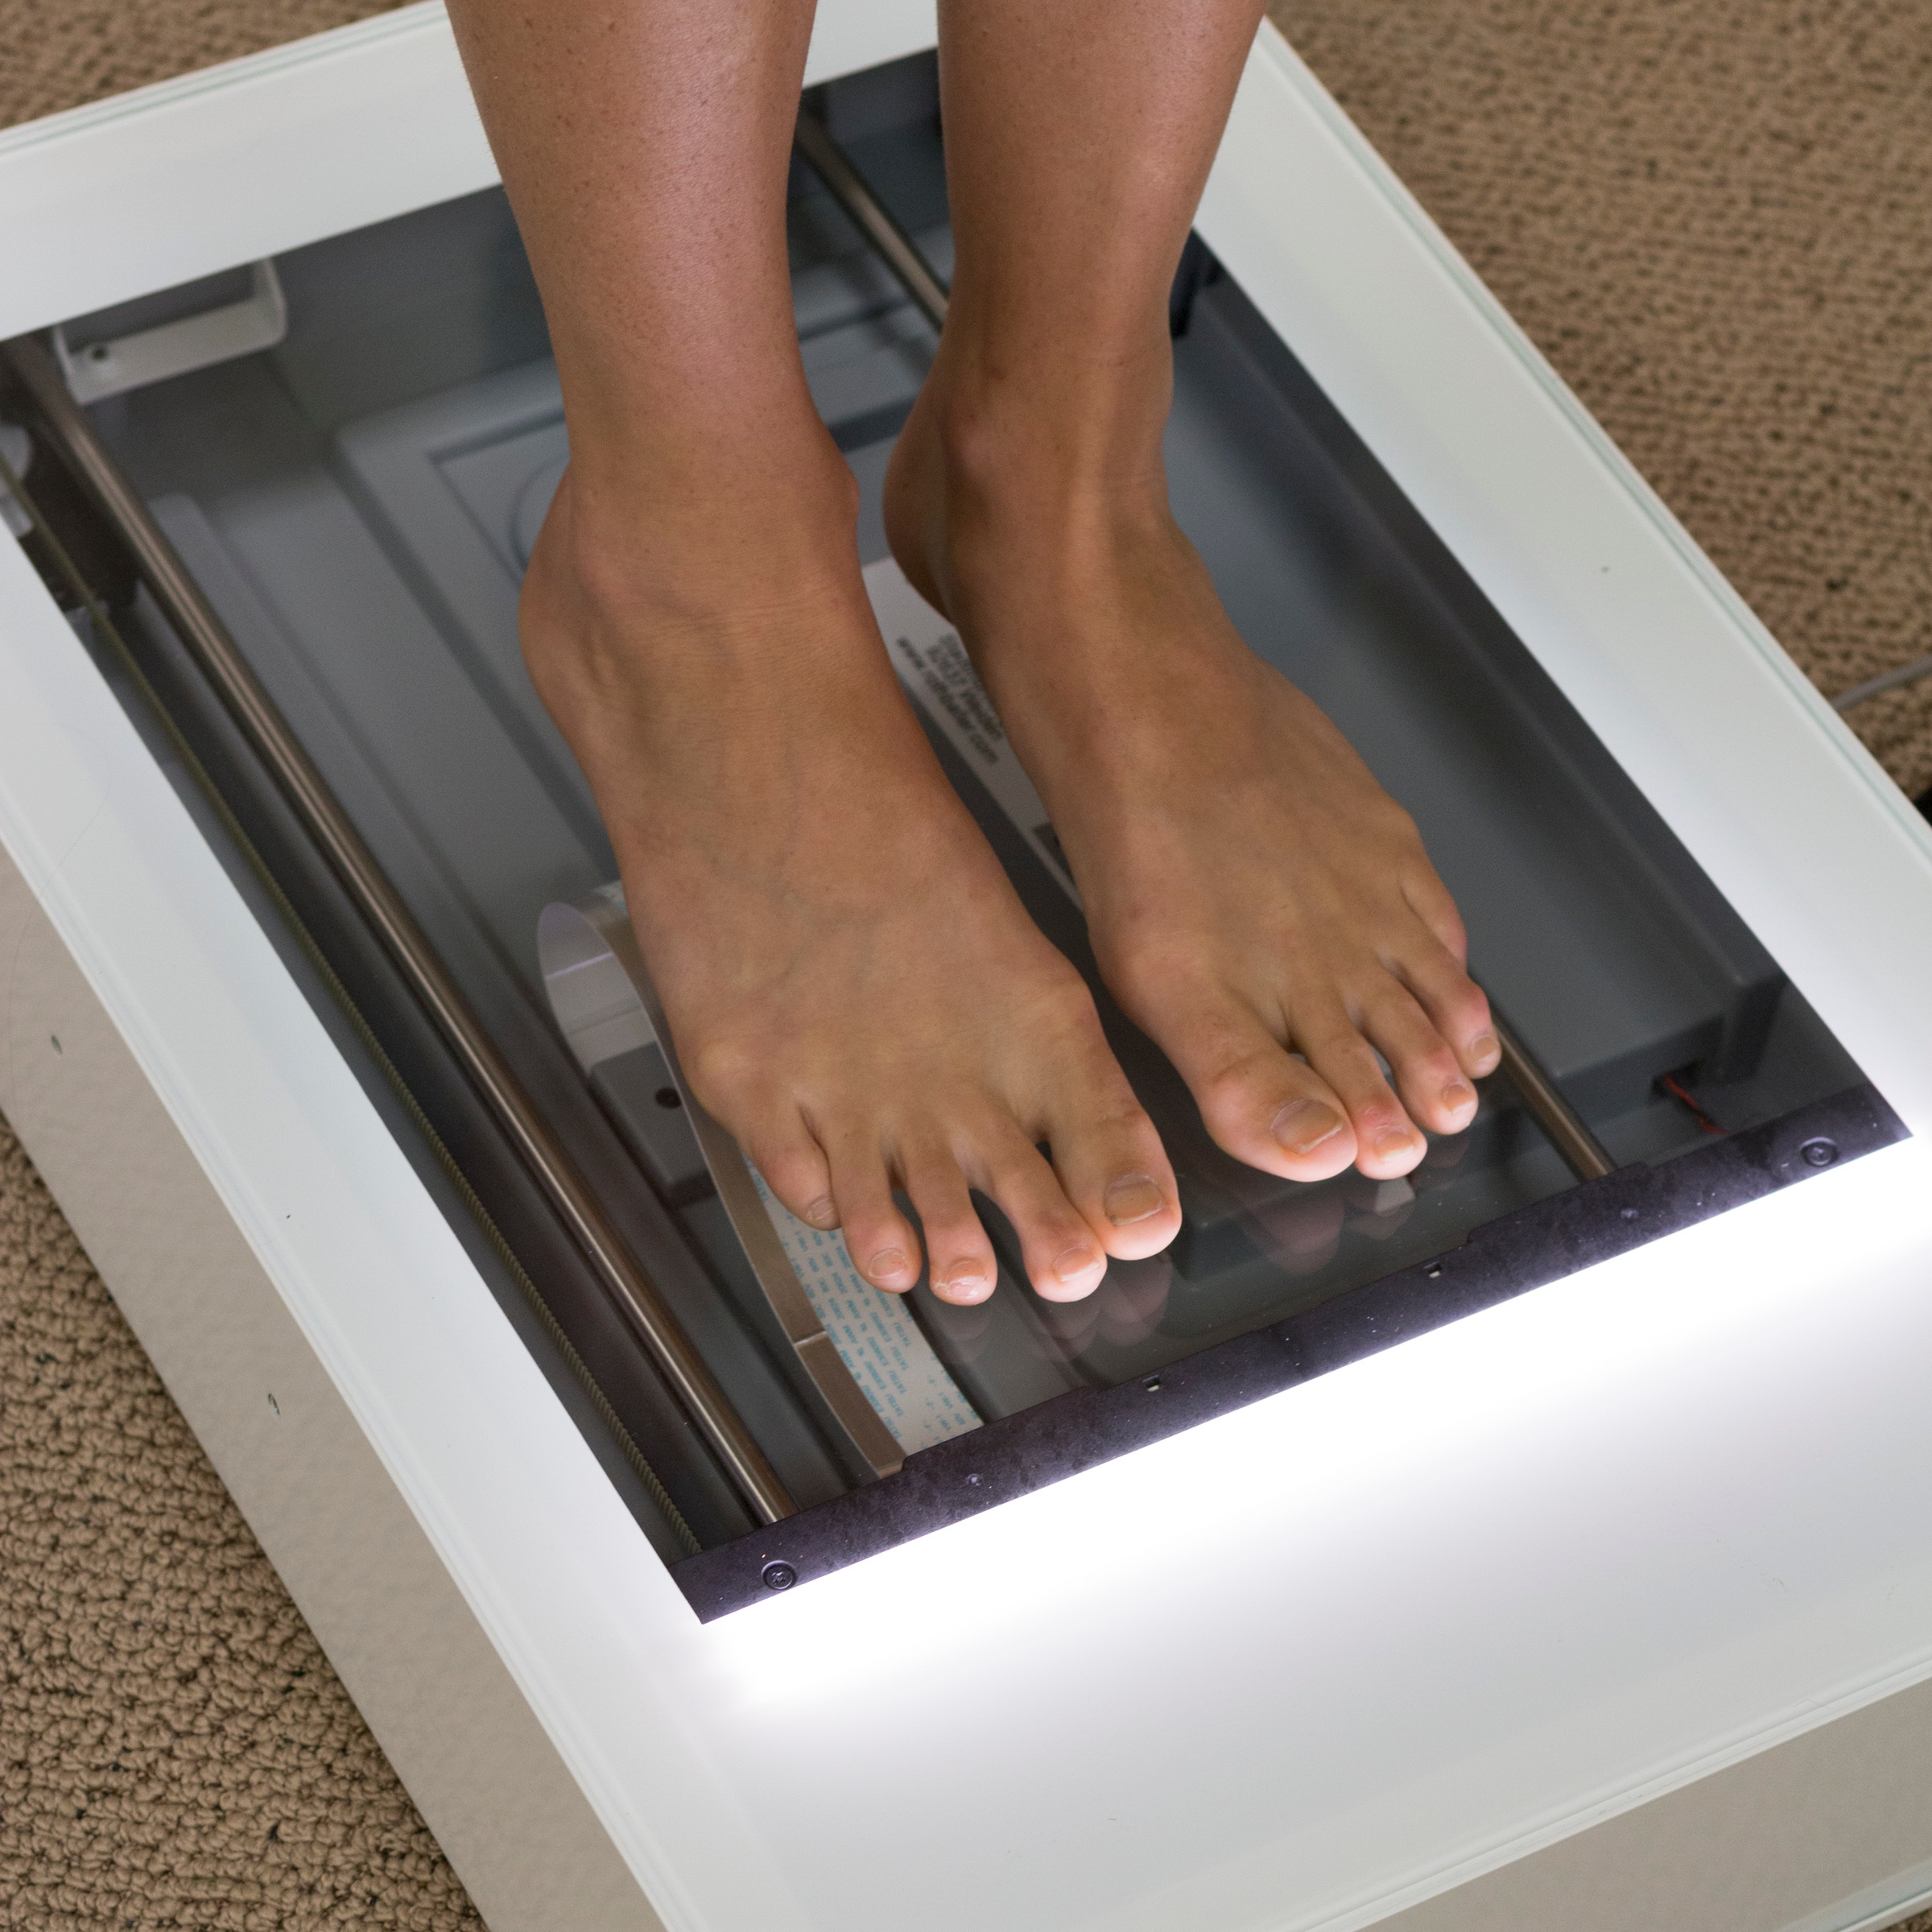 2D SCAN - We will take a measurement of your foot using a 2D scanner. This measurement will give us the exact dimensions of your foot. We will use this image in our insole design software to make a footbed that fits exactly to your foot.